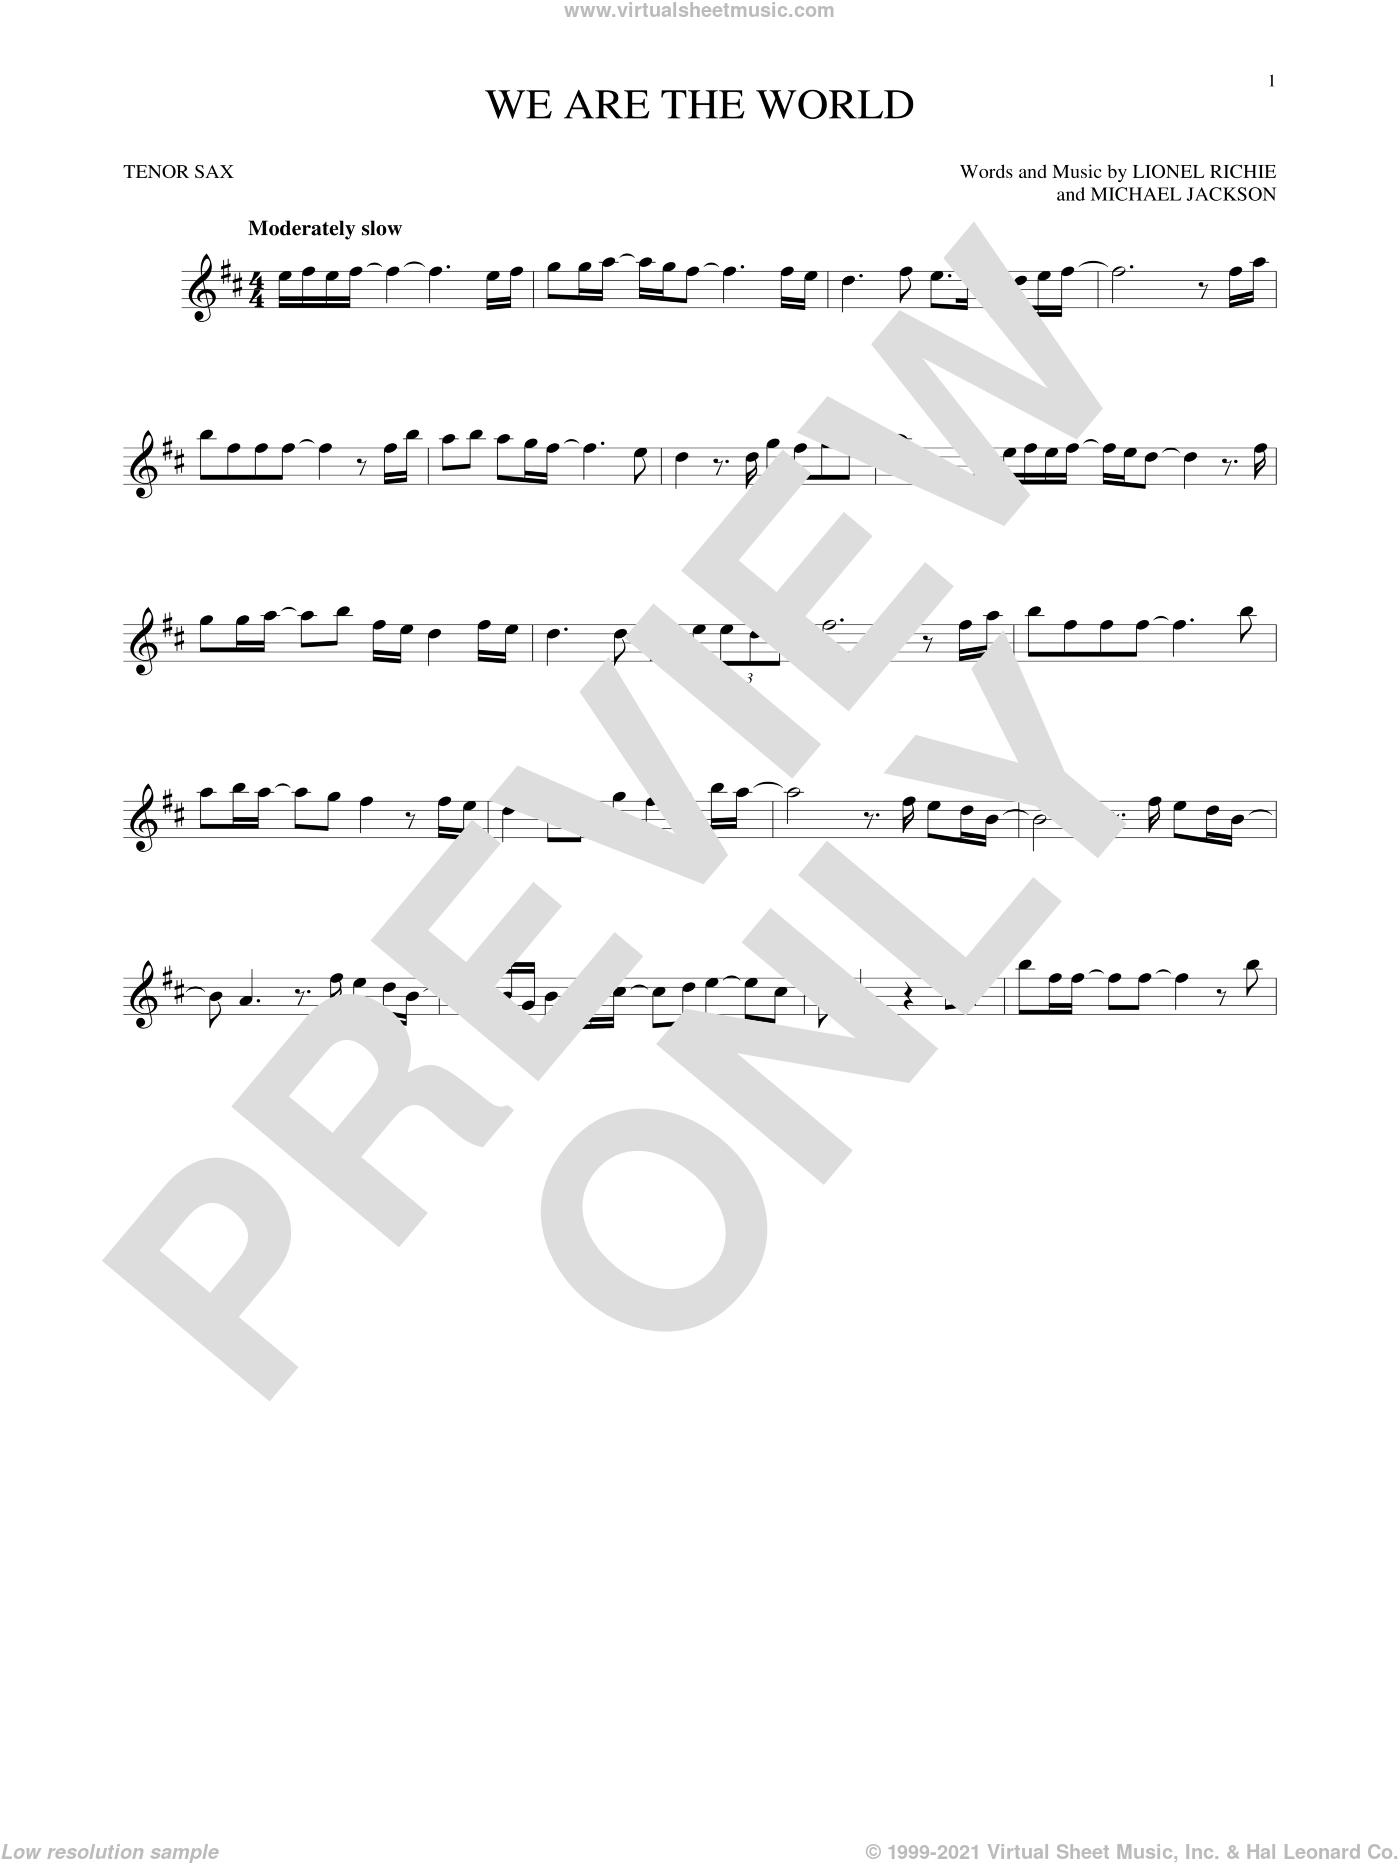 We Are The World sheet music for tenor saxophone solo by Michael Jackson, USA For Africa, Lionel Richie and Lionel Richie & Michael Jackson, intermediate skill level